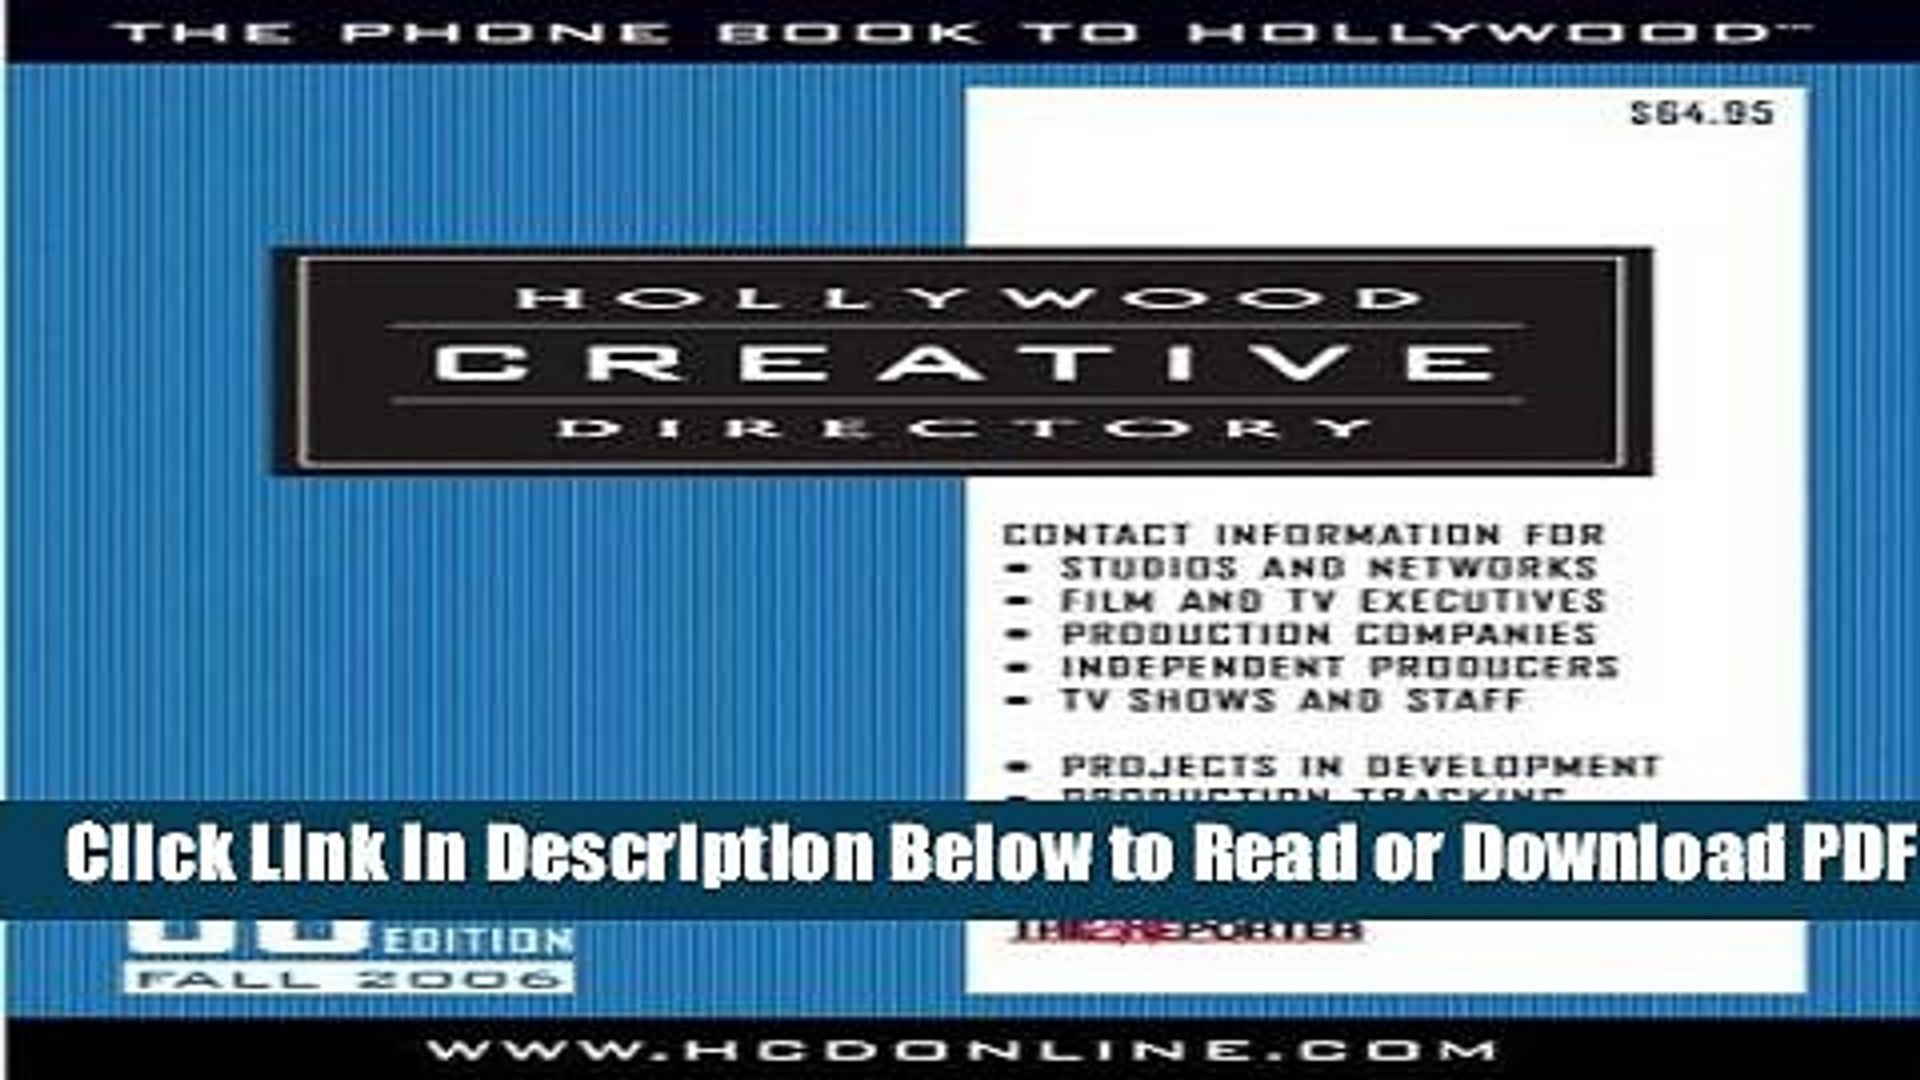 [Download] Hollywood Creative Directory: 58th Edition Free Online